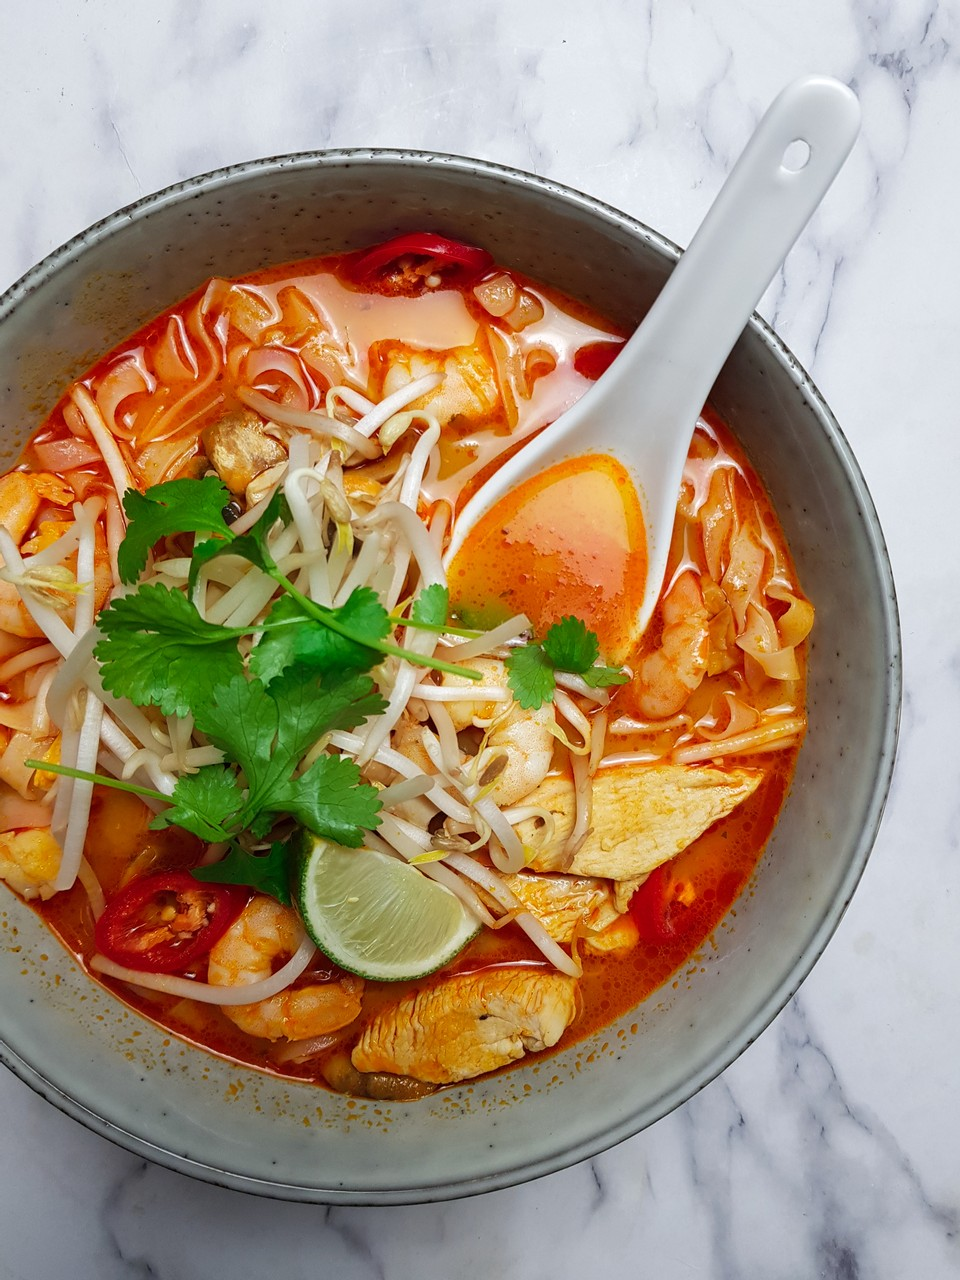 Chicken and prawn red curry laksa